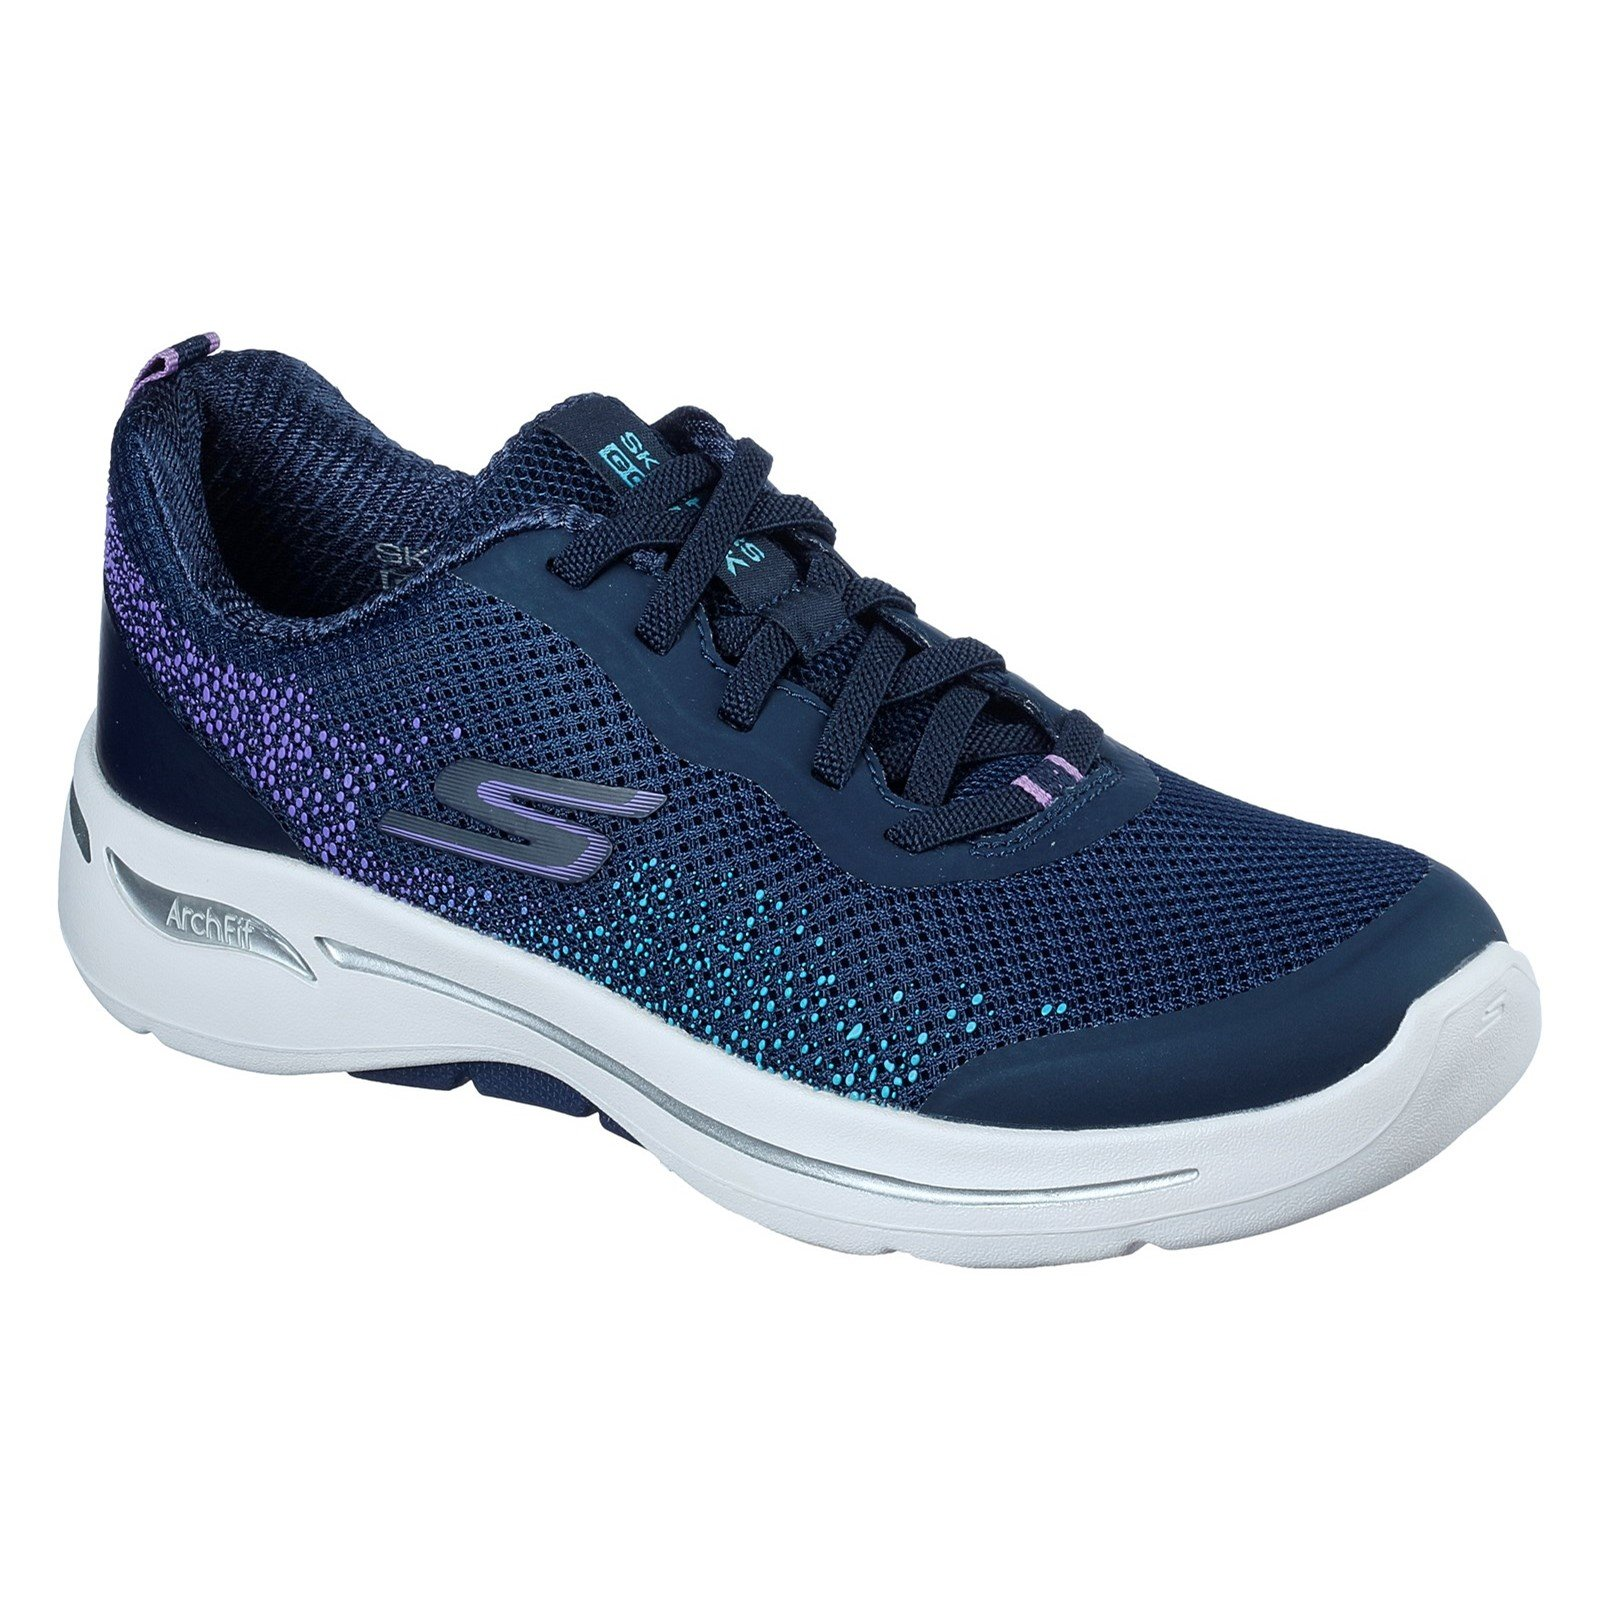 Skechers Women's Go Walk Arch Fit Flying Stars Trainer Various Colours 32841 - Navy/Lavender 6